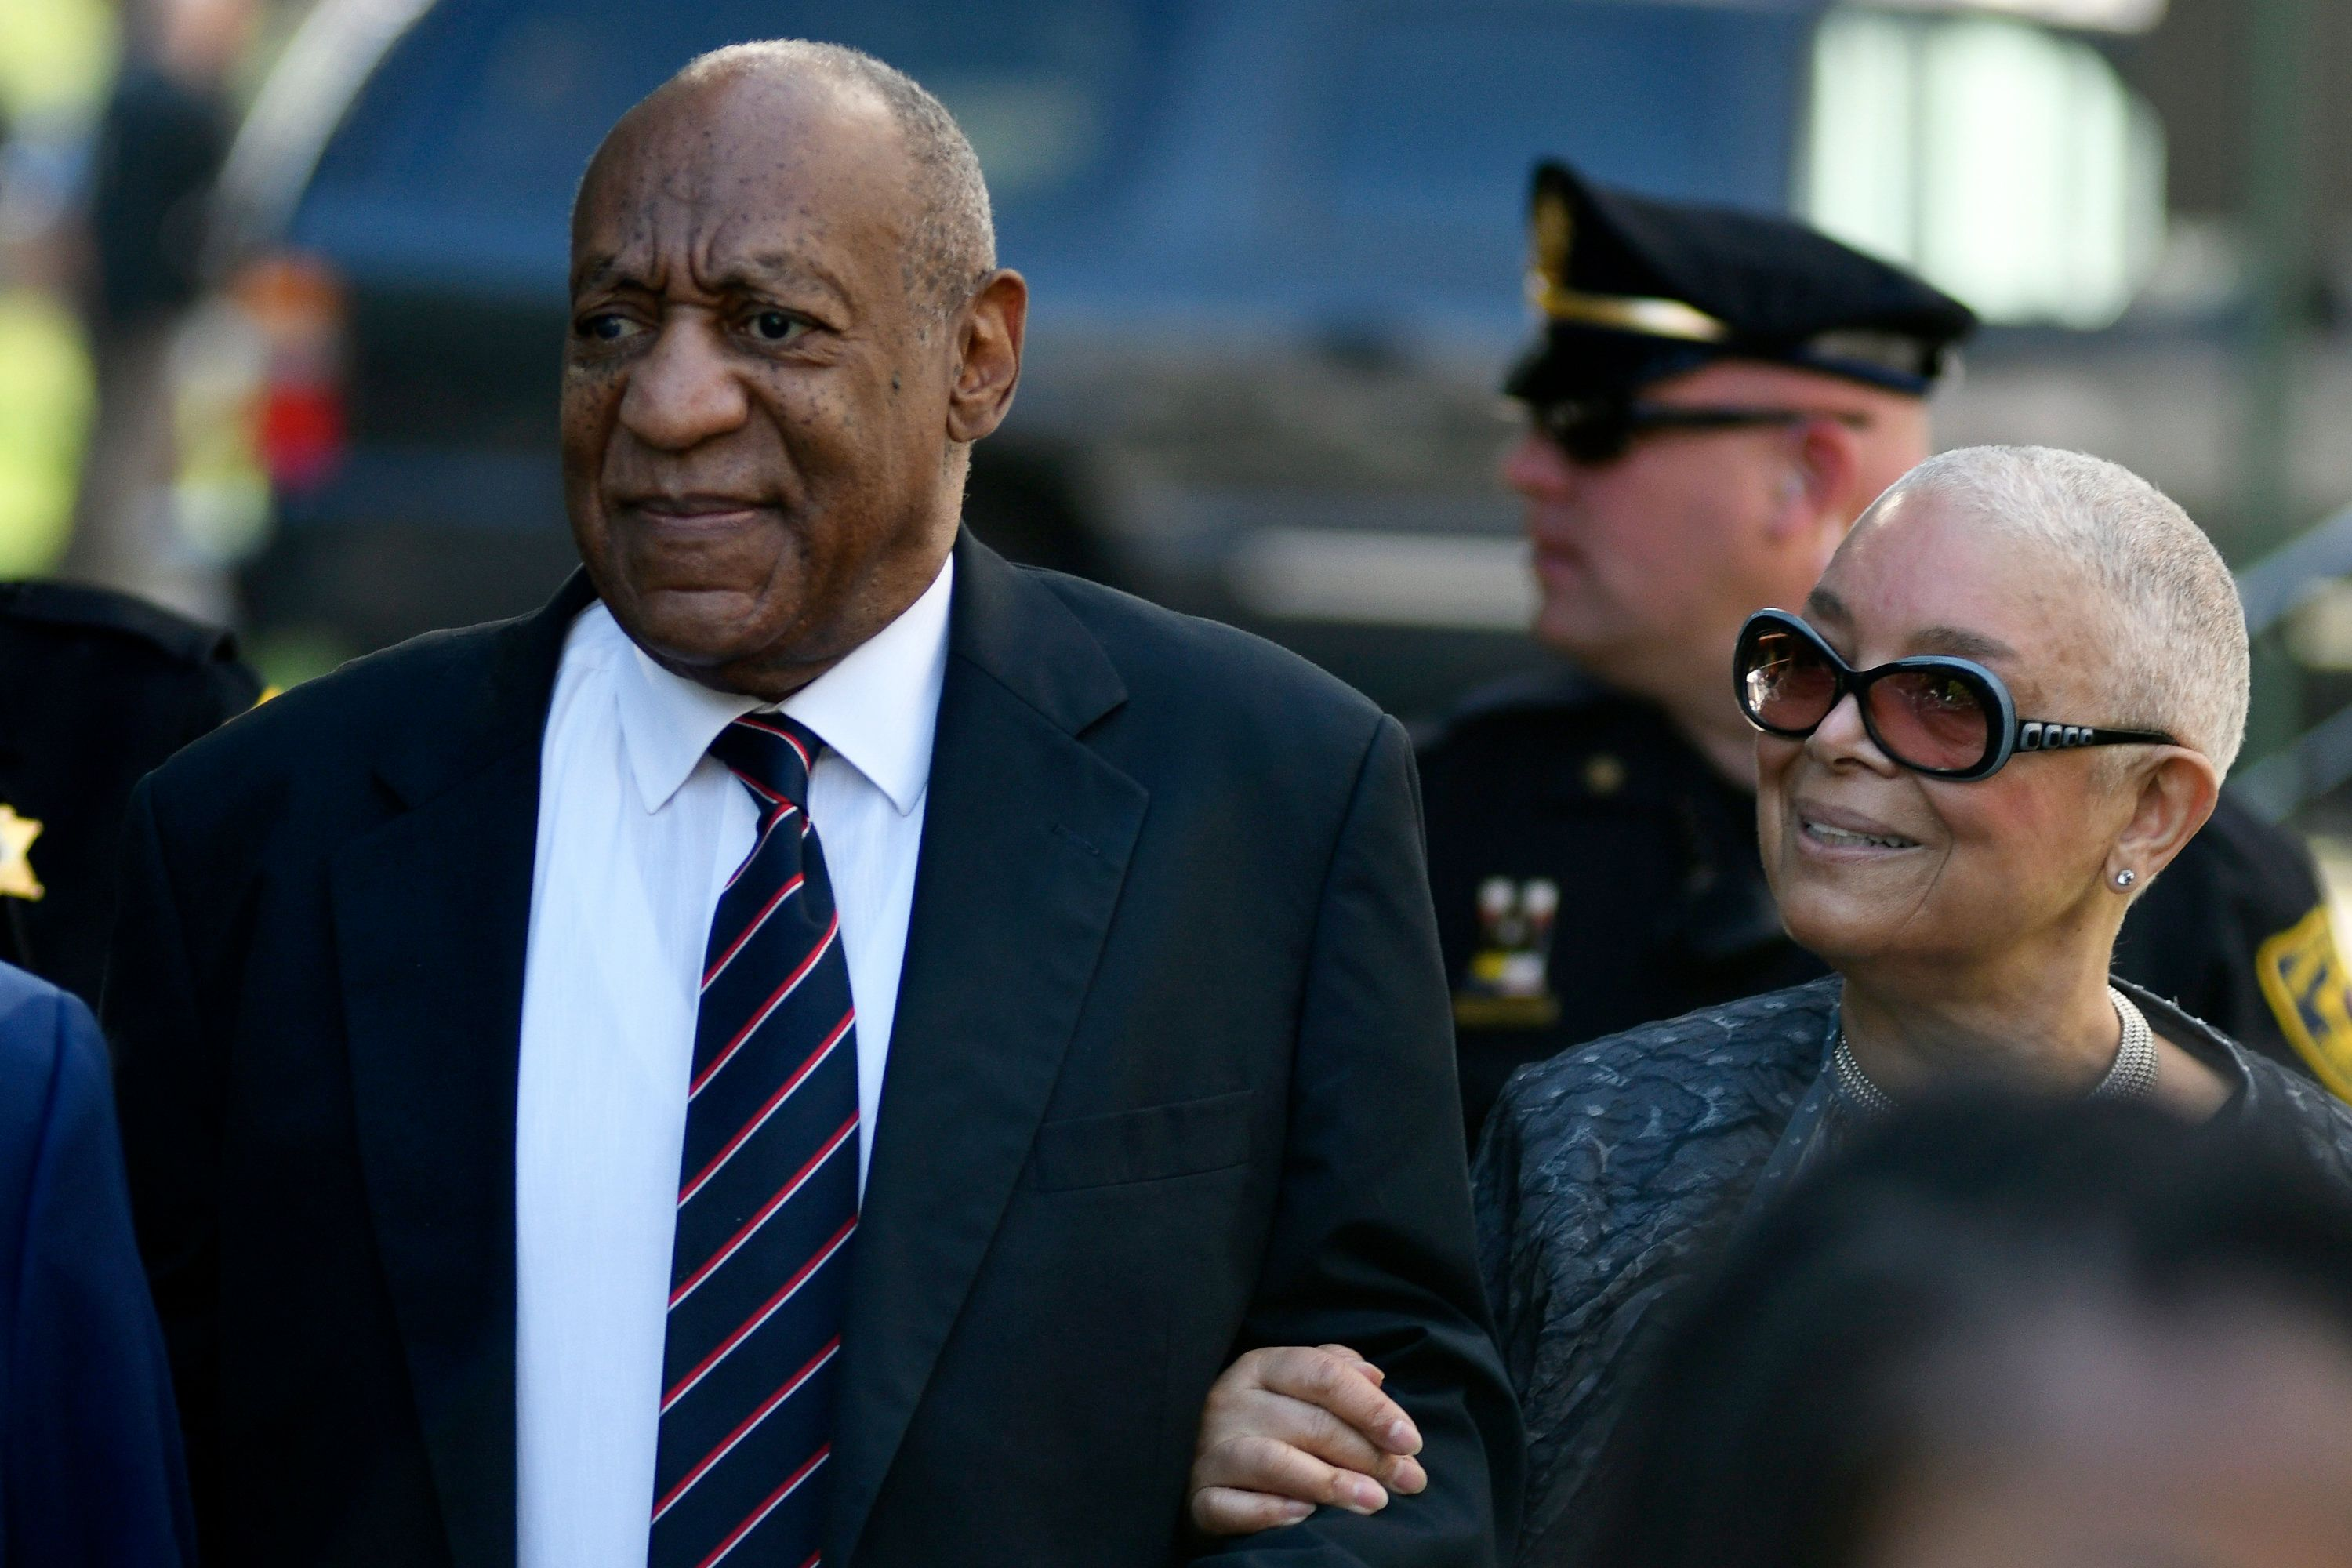 Bill Cosby, with wife Camille Cosby on his side, arrive at Montgomery County Courthouse for the sexual assault trial second week, in Norristown, Pennsylvania, on June 12, 2017. It is the first appearance at this trial for the spouse of the actor/comedian. (Photo by Bastiaan Slabbers/NurPhoto via Getty Images)